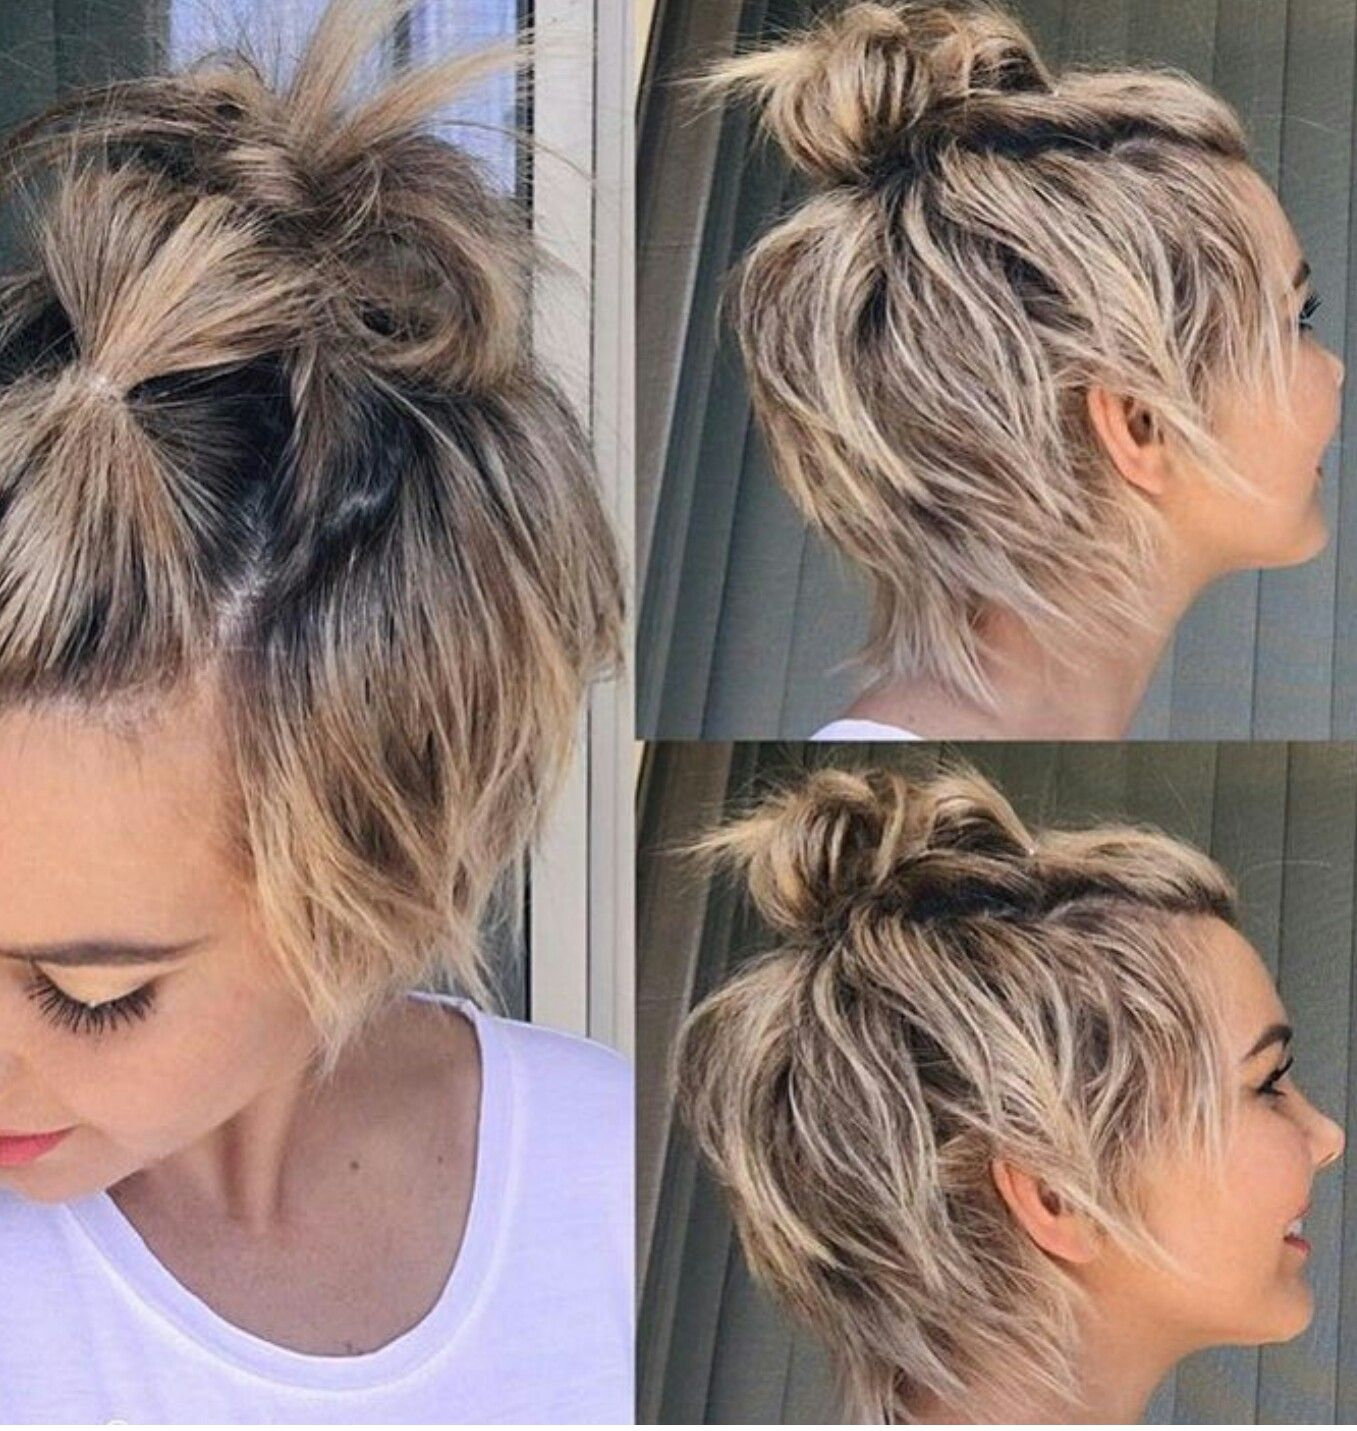 Pin By Tracy Stachovich Hunt On Hair Styles Short Hair Styles Growing Out Short Hair Styles Growing Out Hair